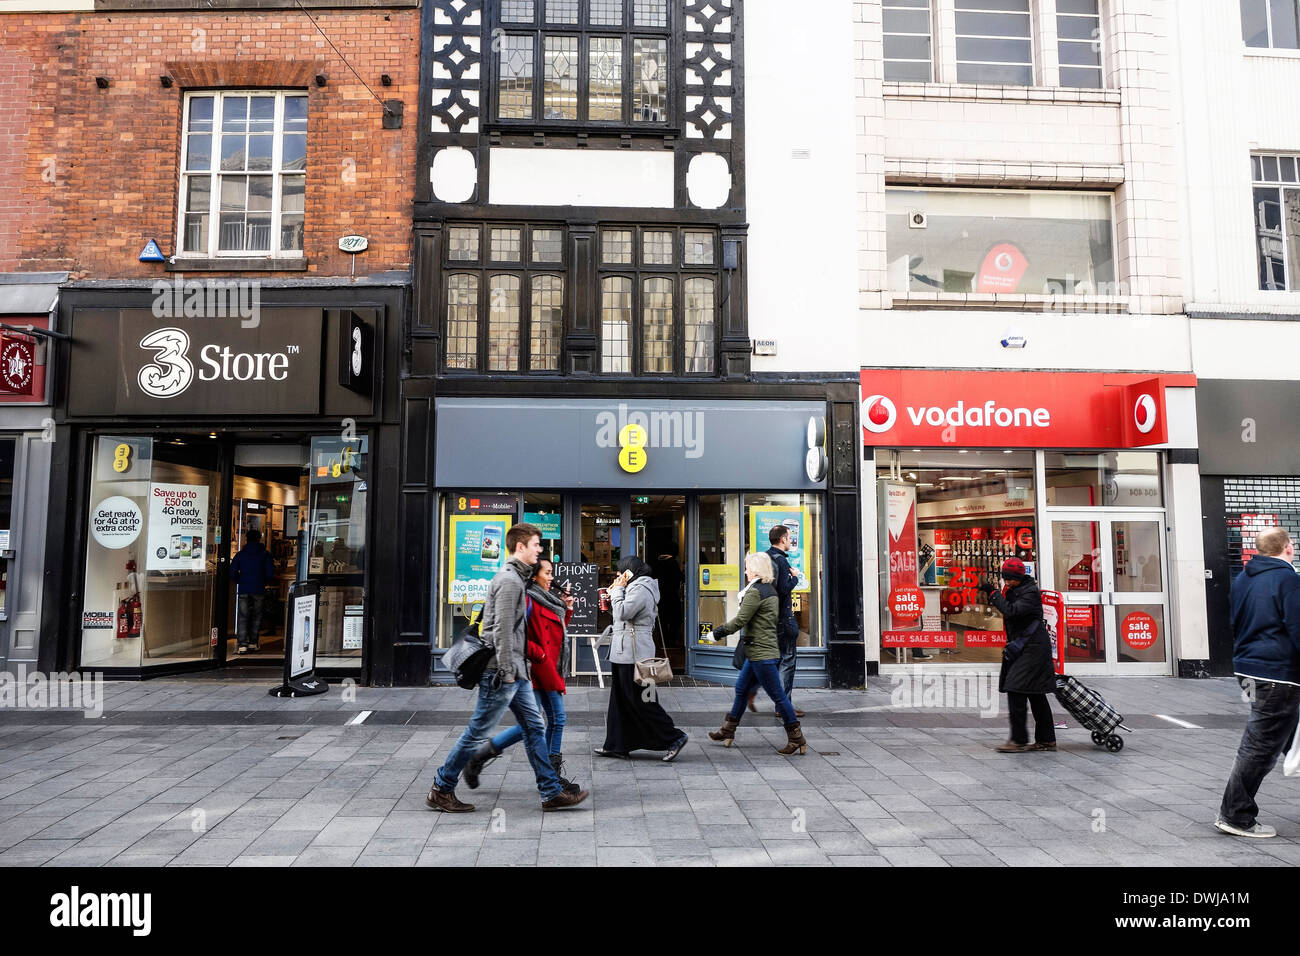 A row of phone shops in Leicester city centre, UK. Stock Photo